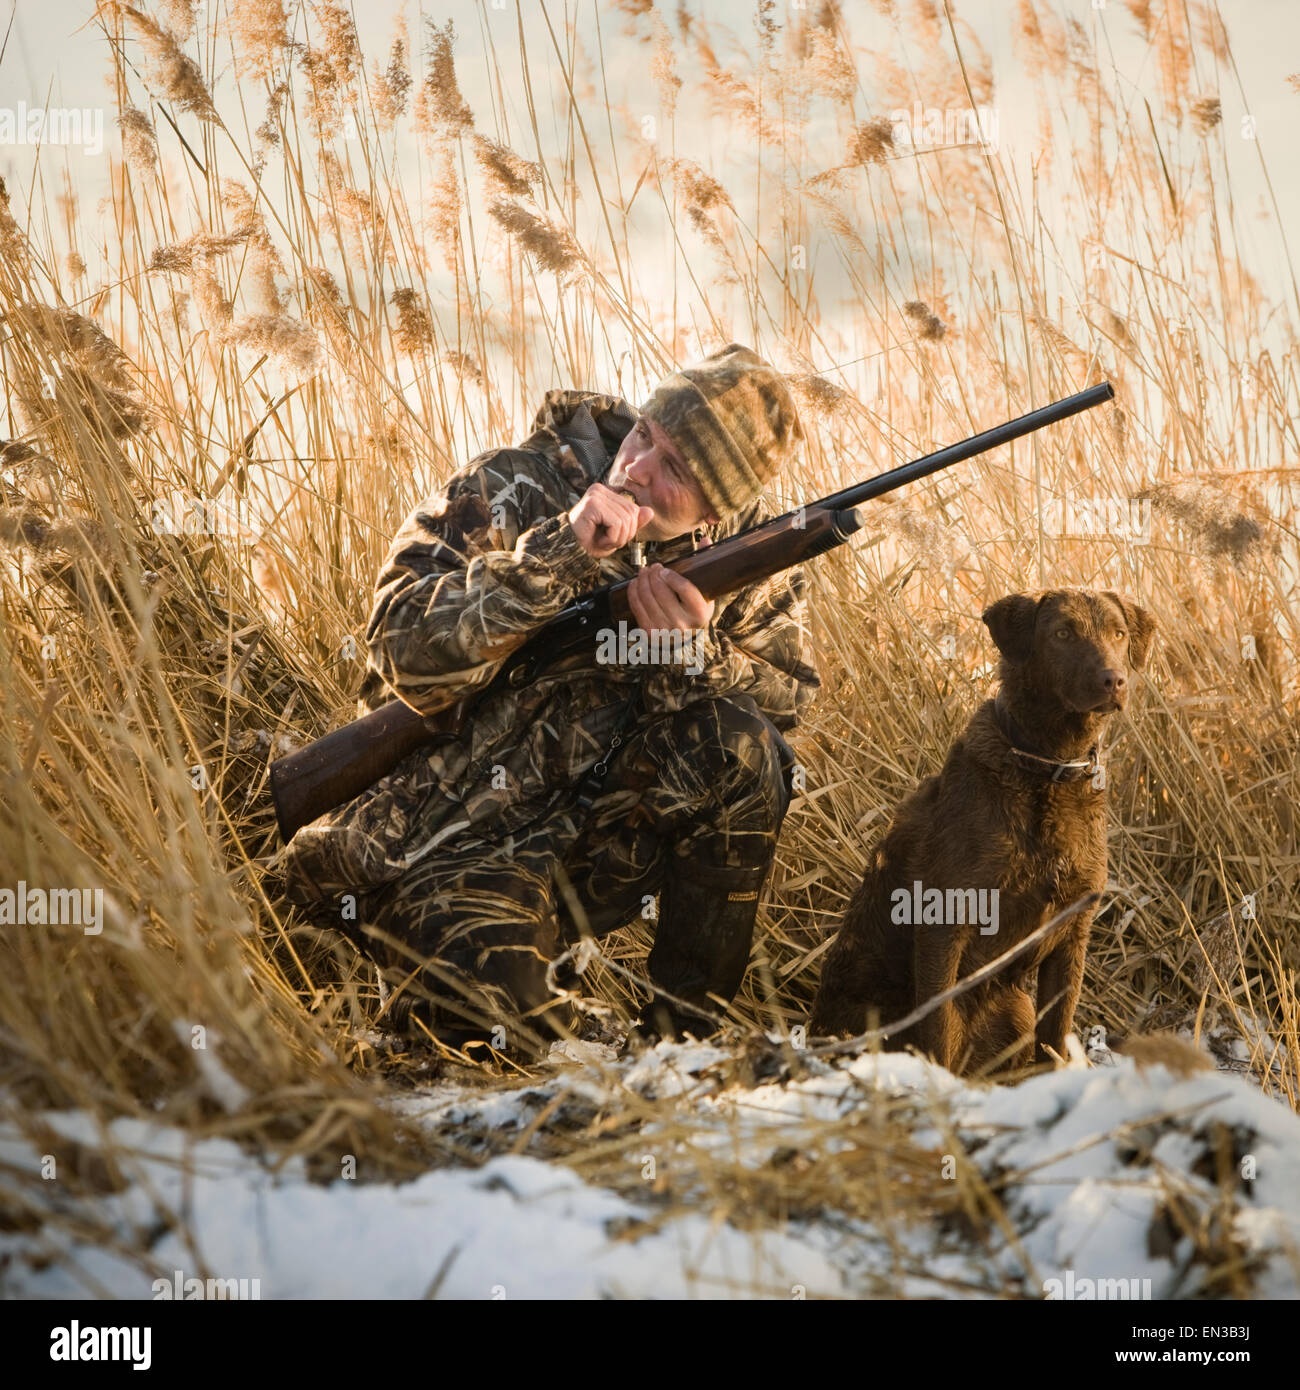 Deer Hunting Stock Photos Royalty Free Business Images